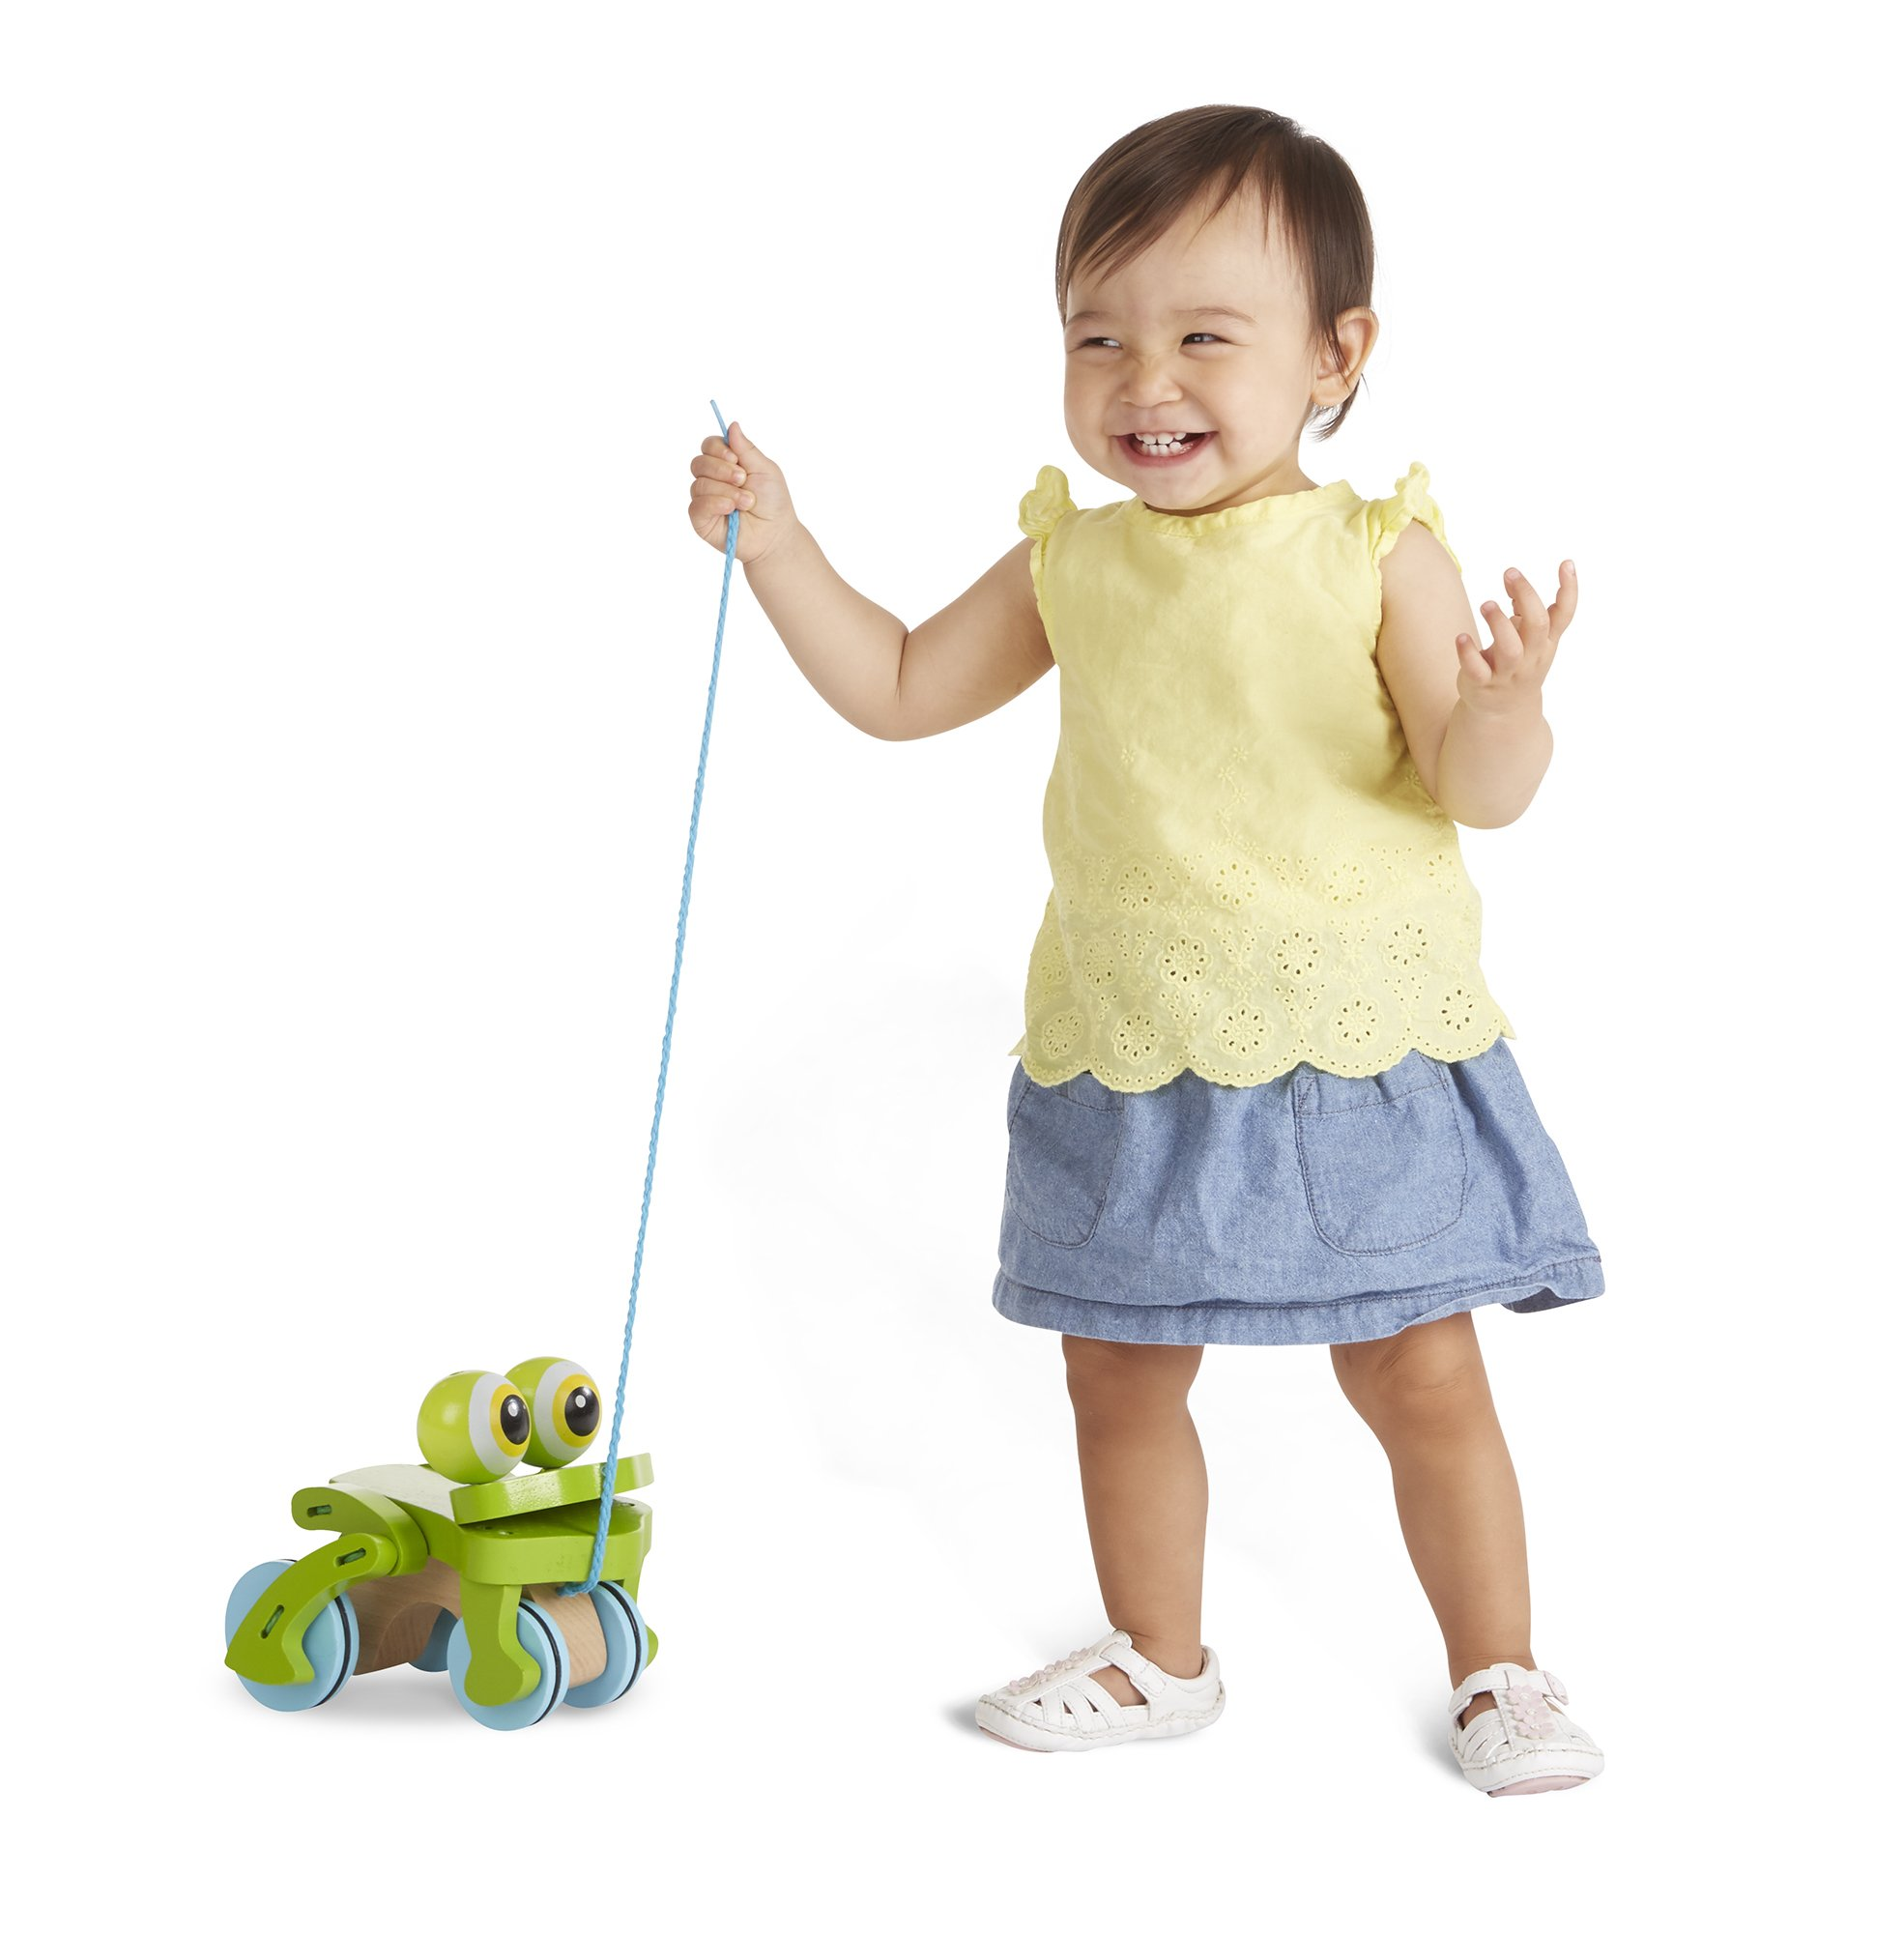 Melissa & Doug First Play Frolicking Frog Wooden Pull Toy by Melissa & Doug (Image #1)